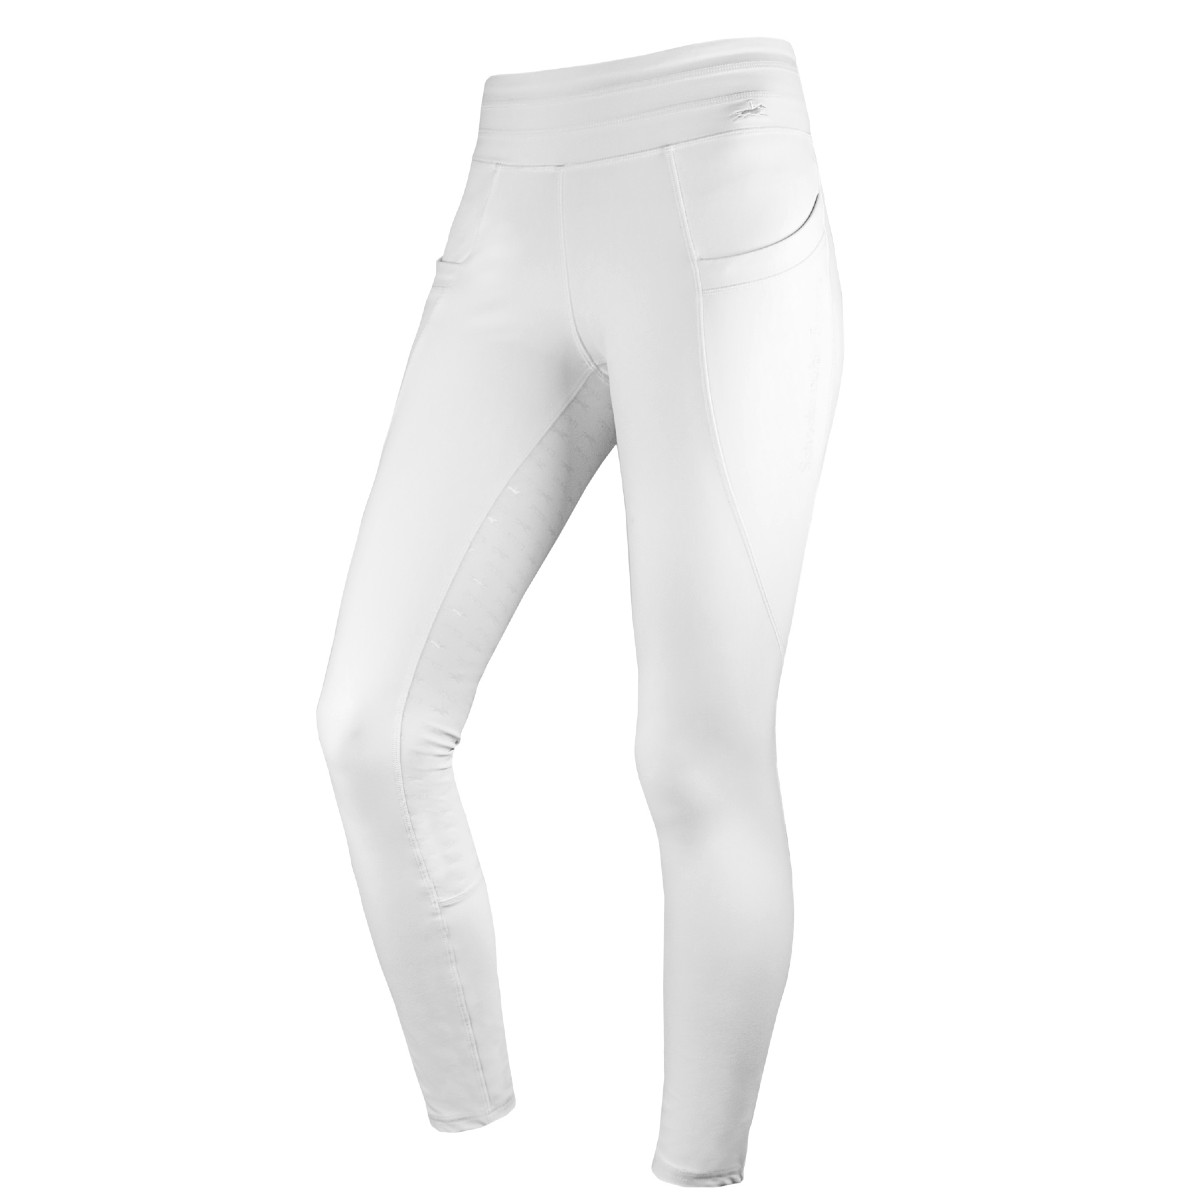 Cooling Ridetights